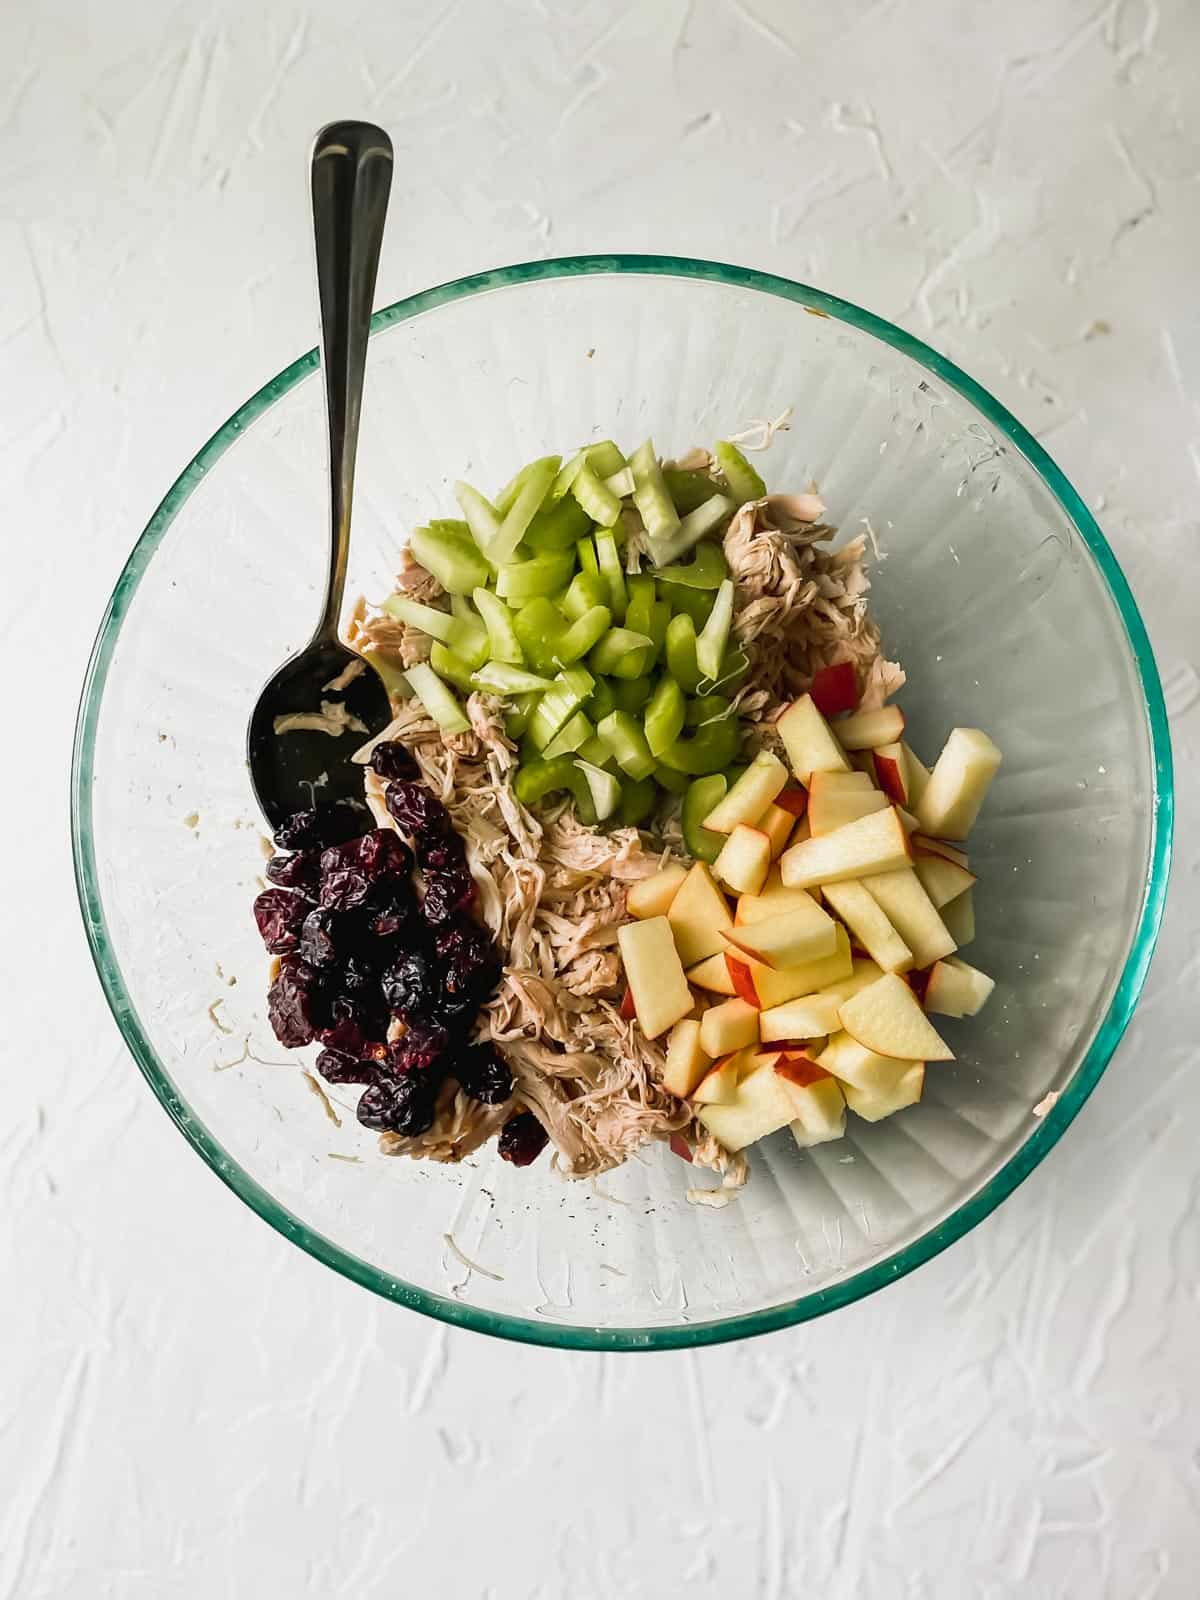 shredded chicken and diced apples and celery in a glass bowl with dried cranberries